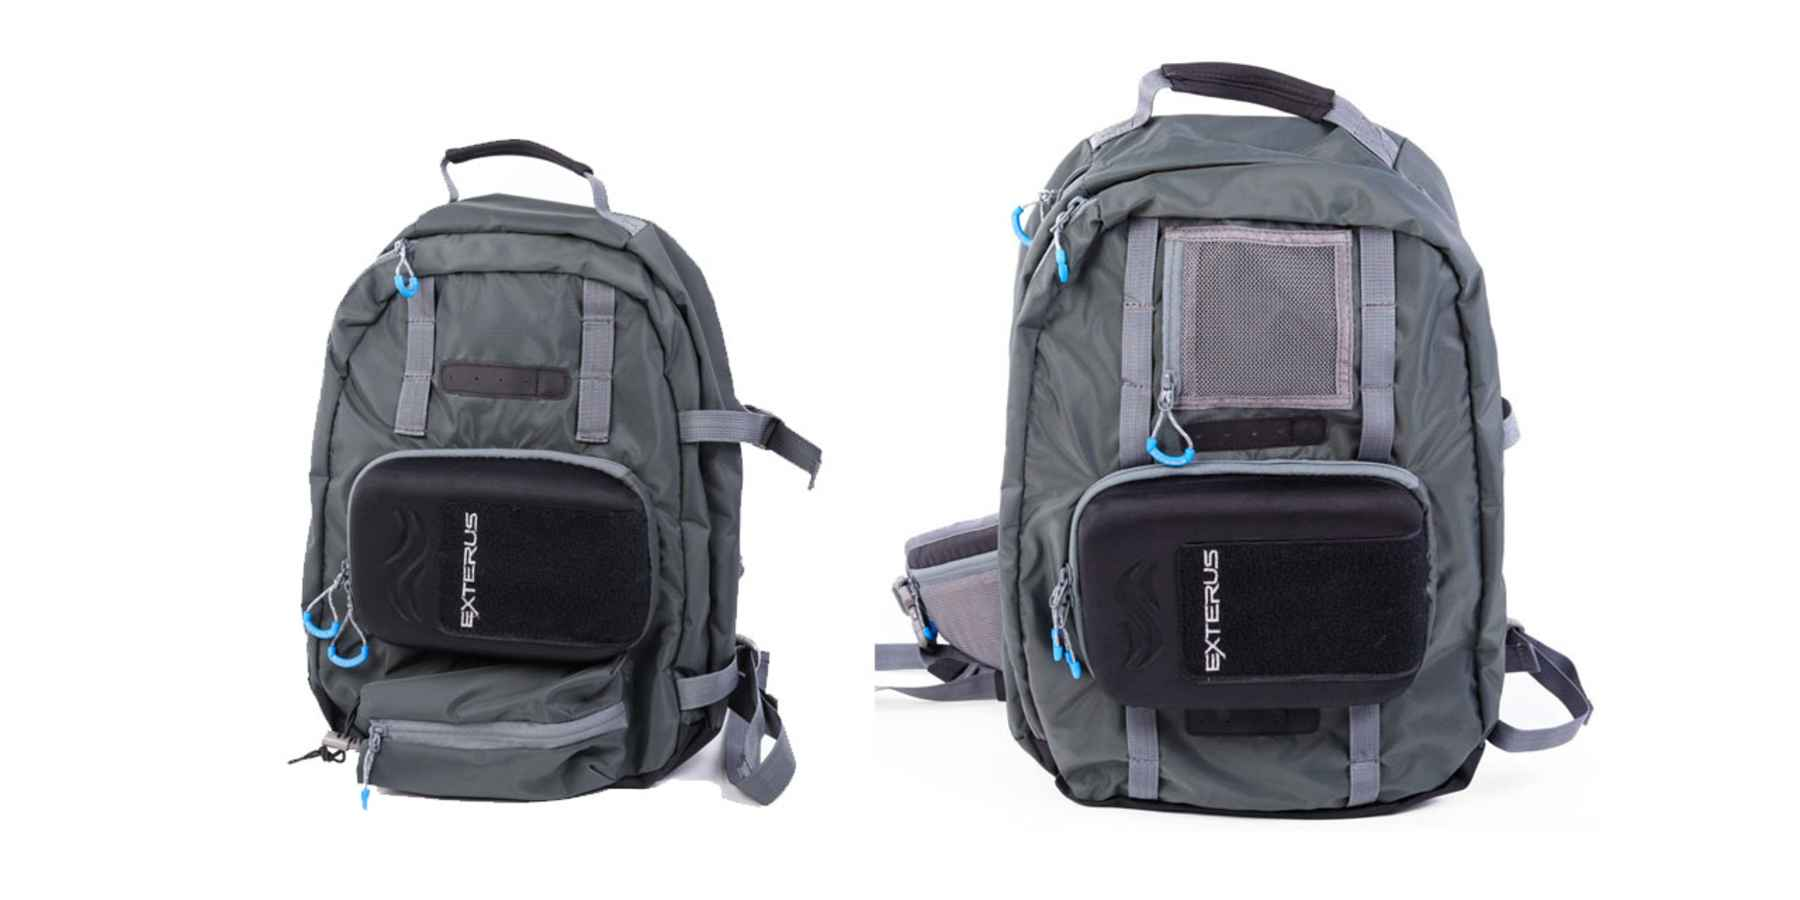 Allen fly fishing introduces new exterus line of bags and for Fishing sling pack